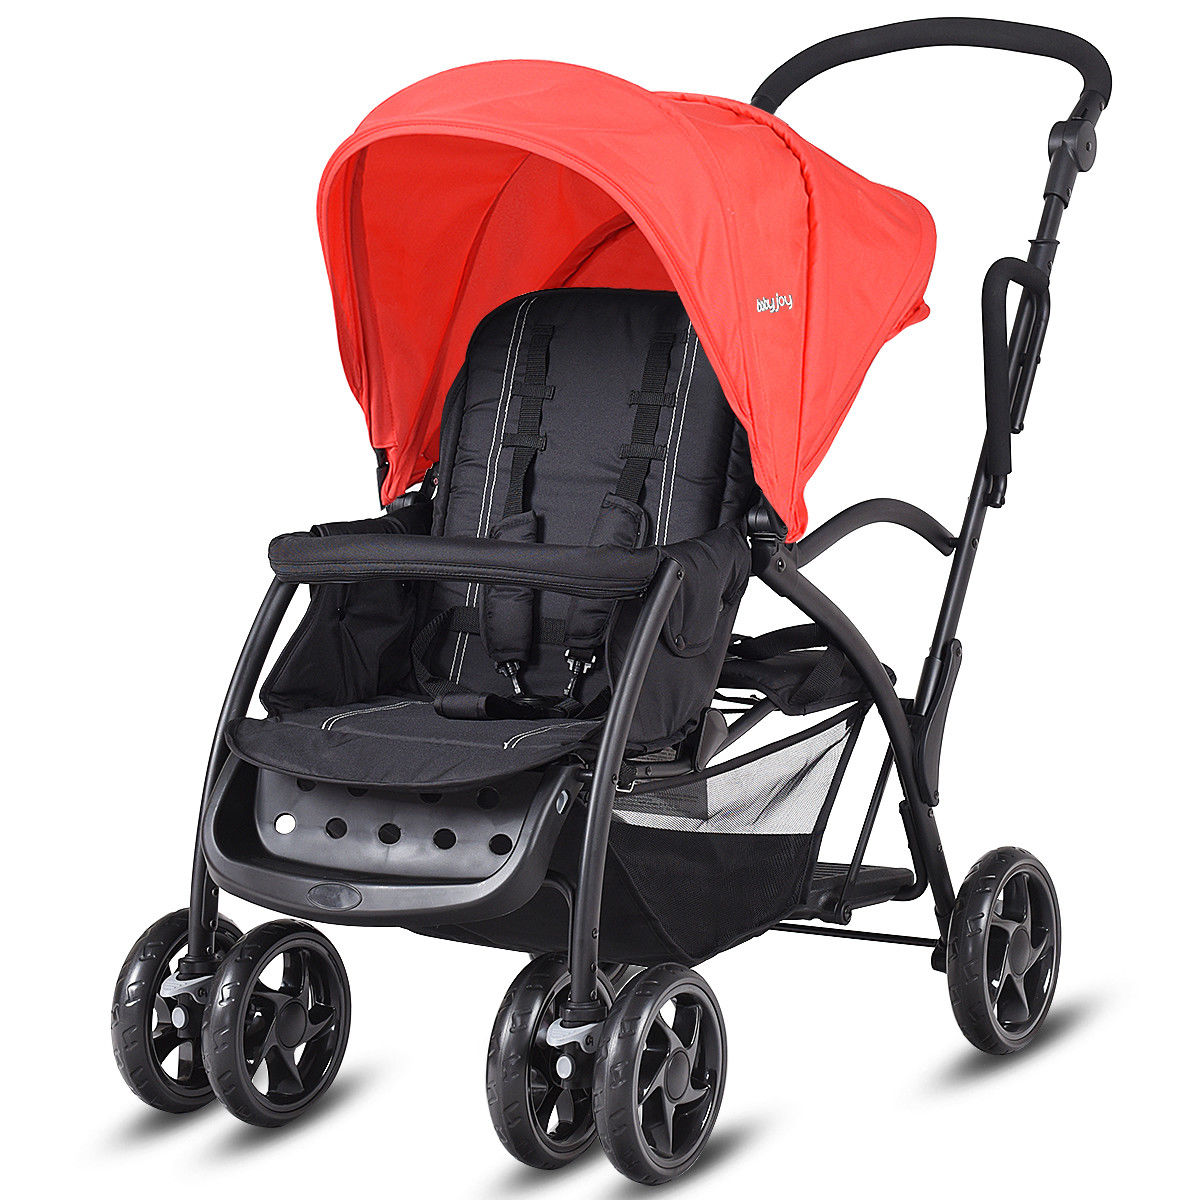 Costway Folding Baby Sit and Stand Ultra Tandem Stroller Pushchair Double Kids Red